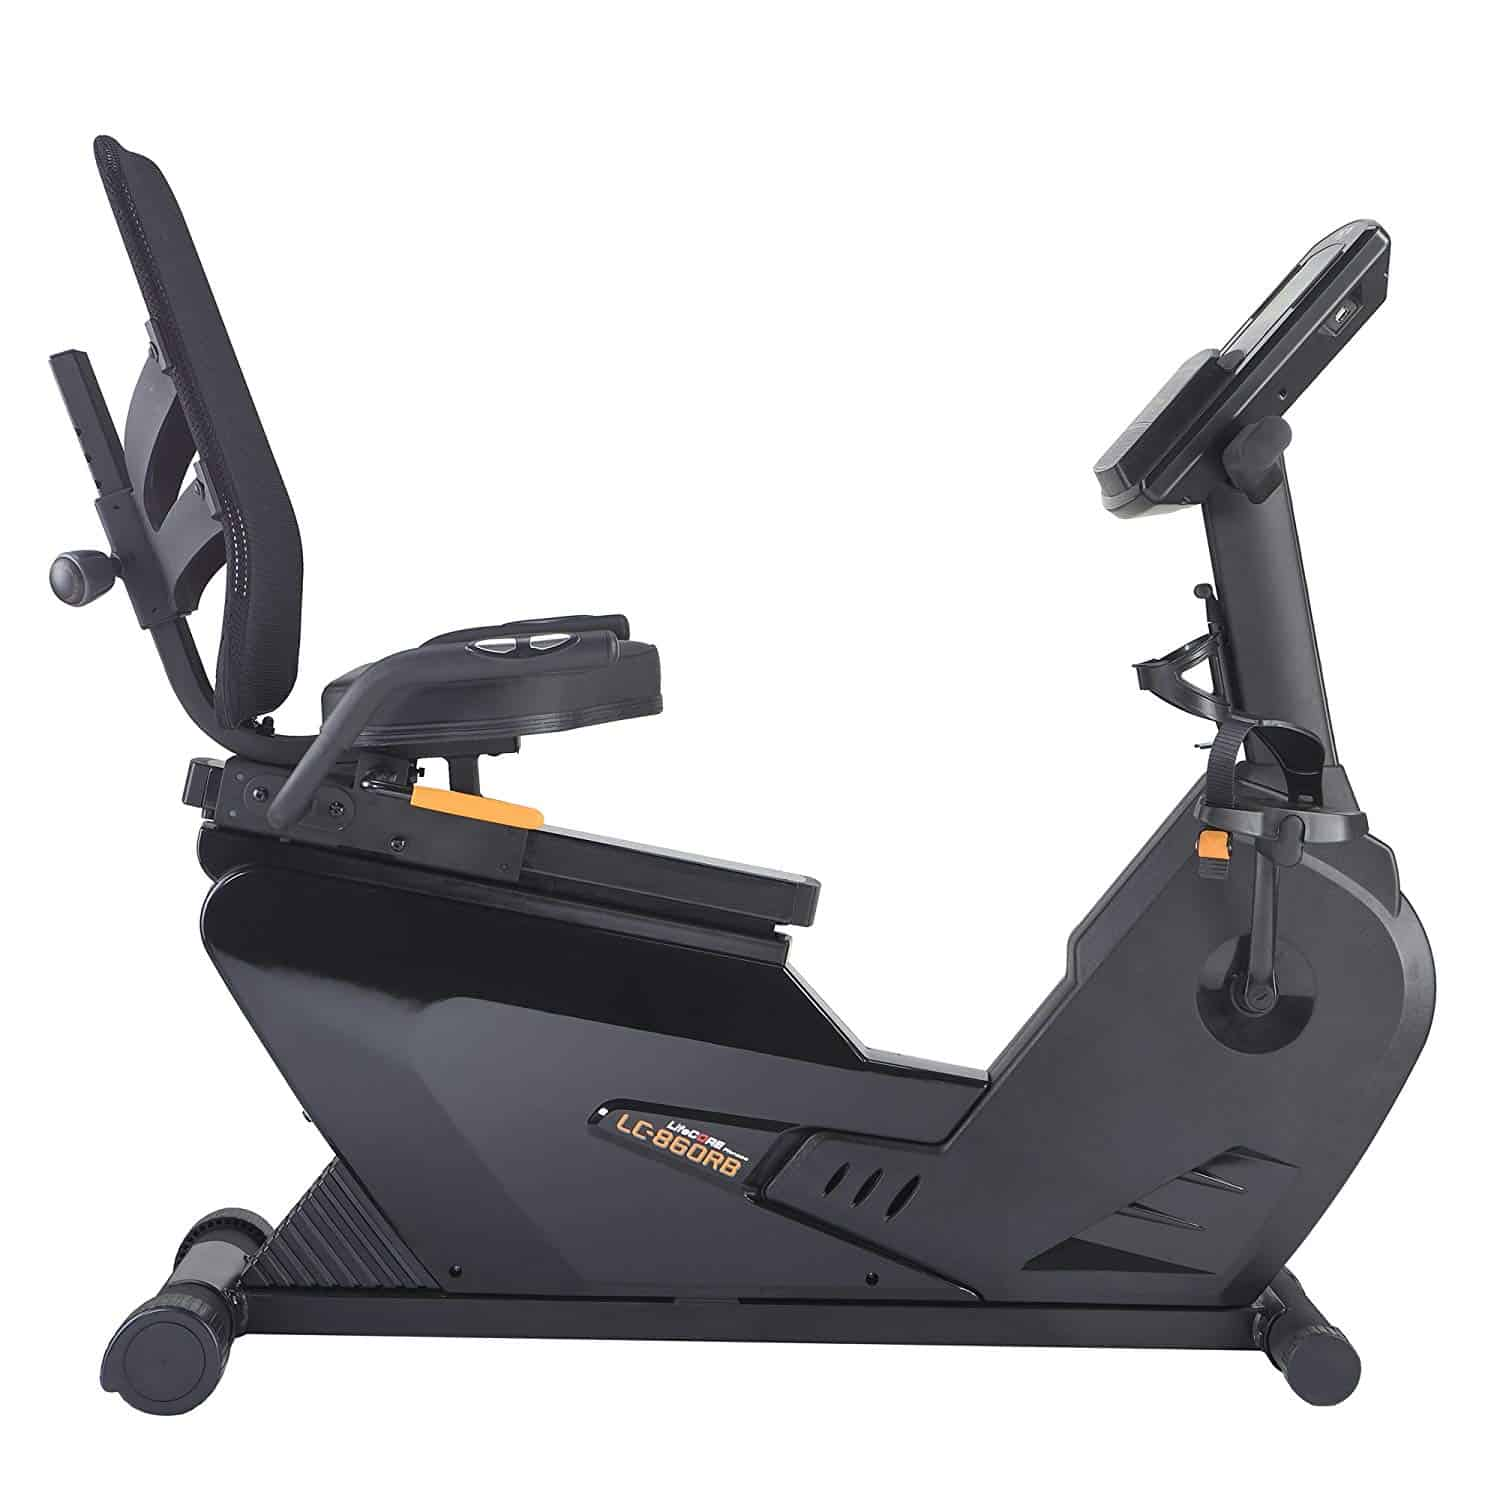 Cybex Treadmill Heart Rate Monitor: LifeCore 860RB Recumbent Exercise Bike Review 2019